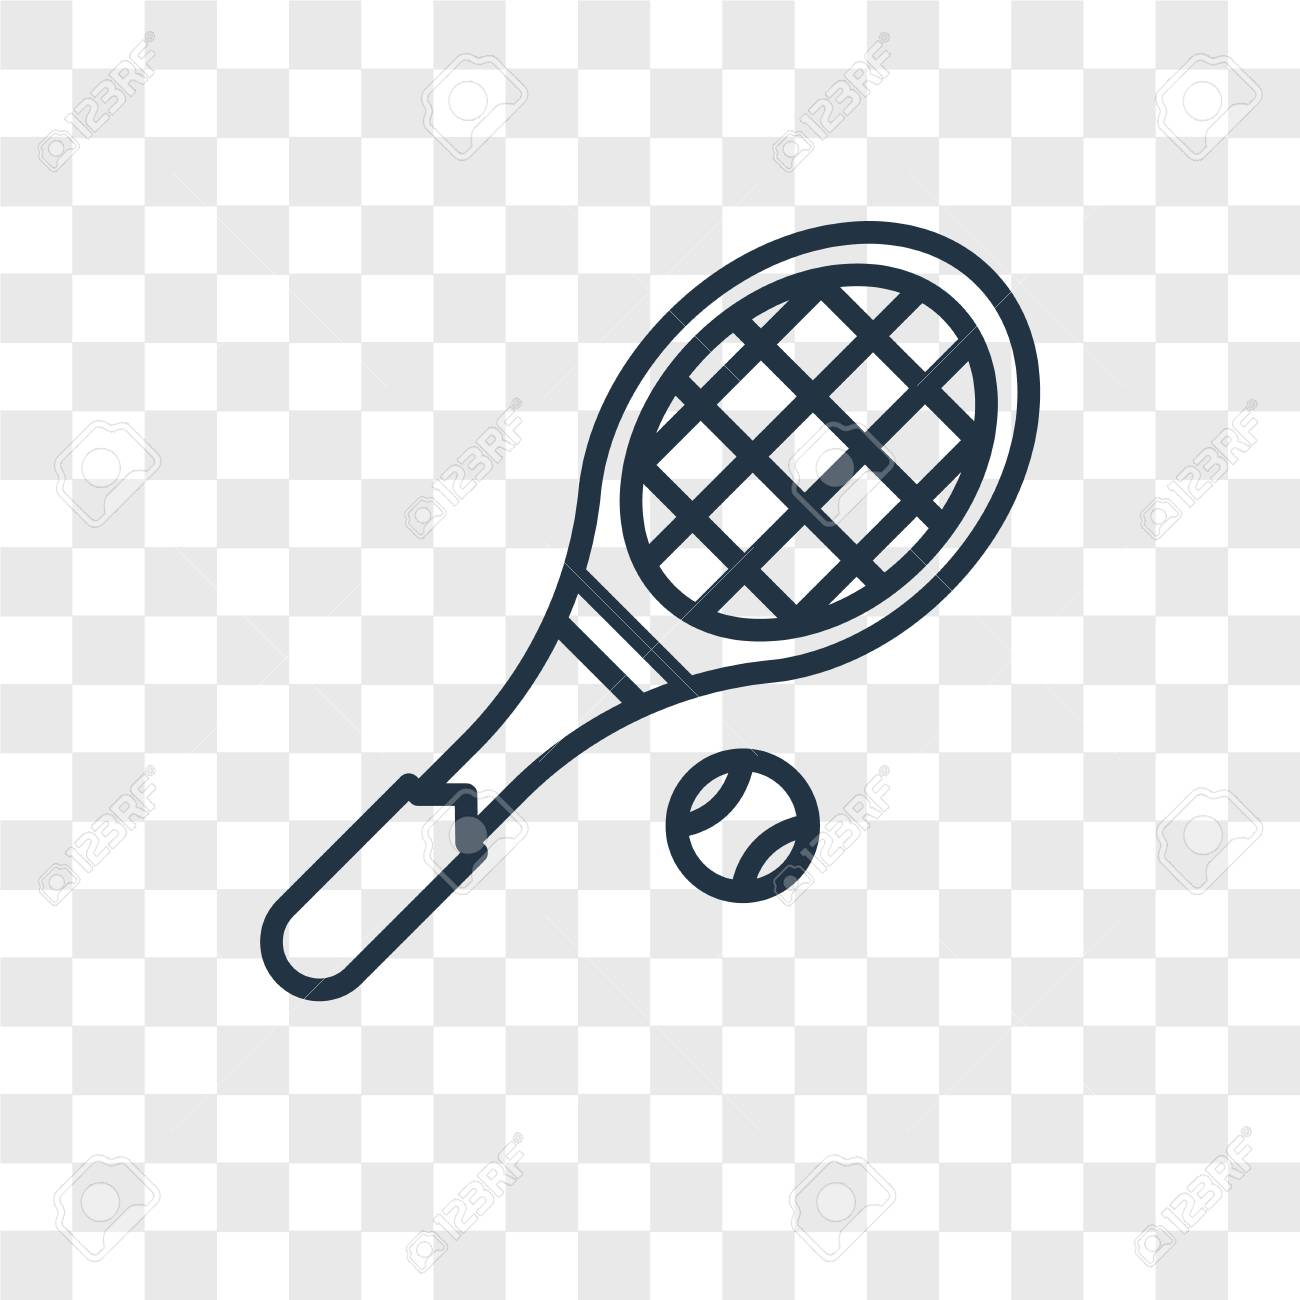 Tennis Racket Vector Icon Isolated On Transparent Background Royalty Free Cliparts Vectors And Stock Illustration Image 107701336